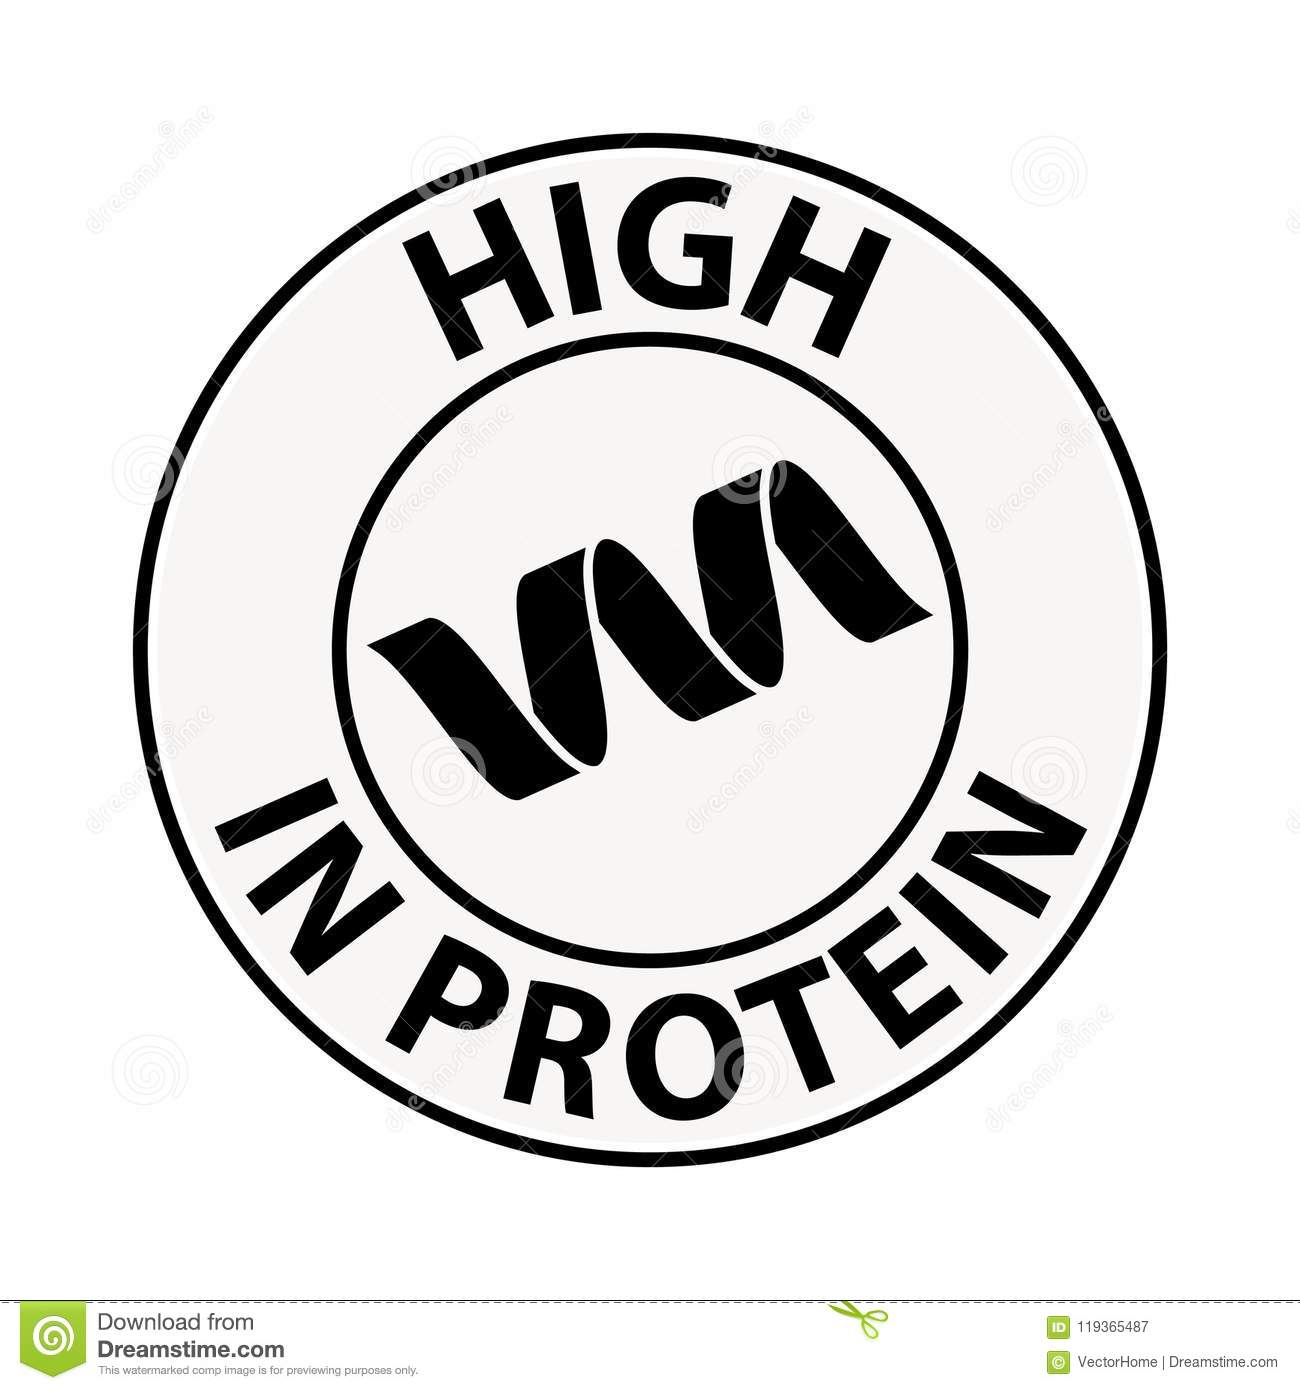 Proteinsymbol, illustration